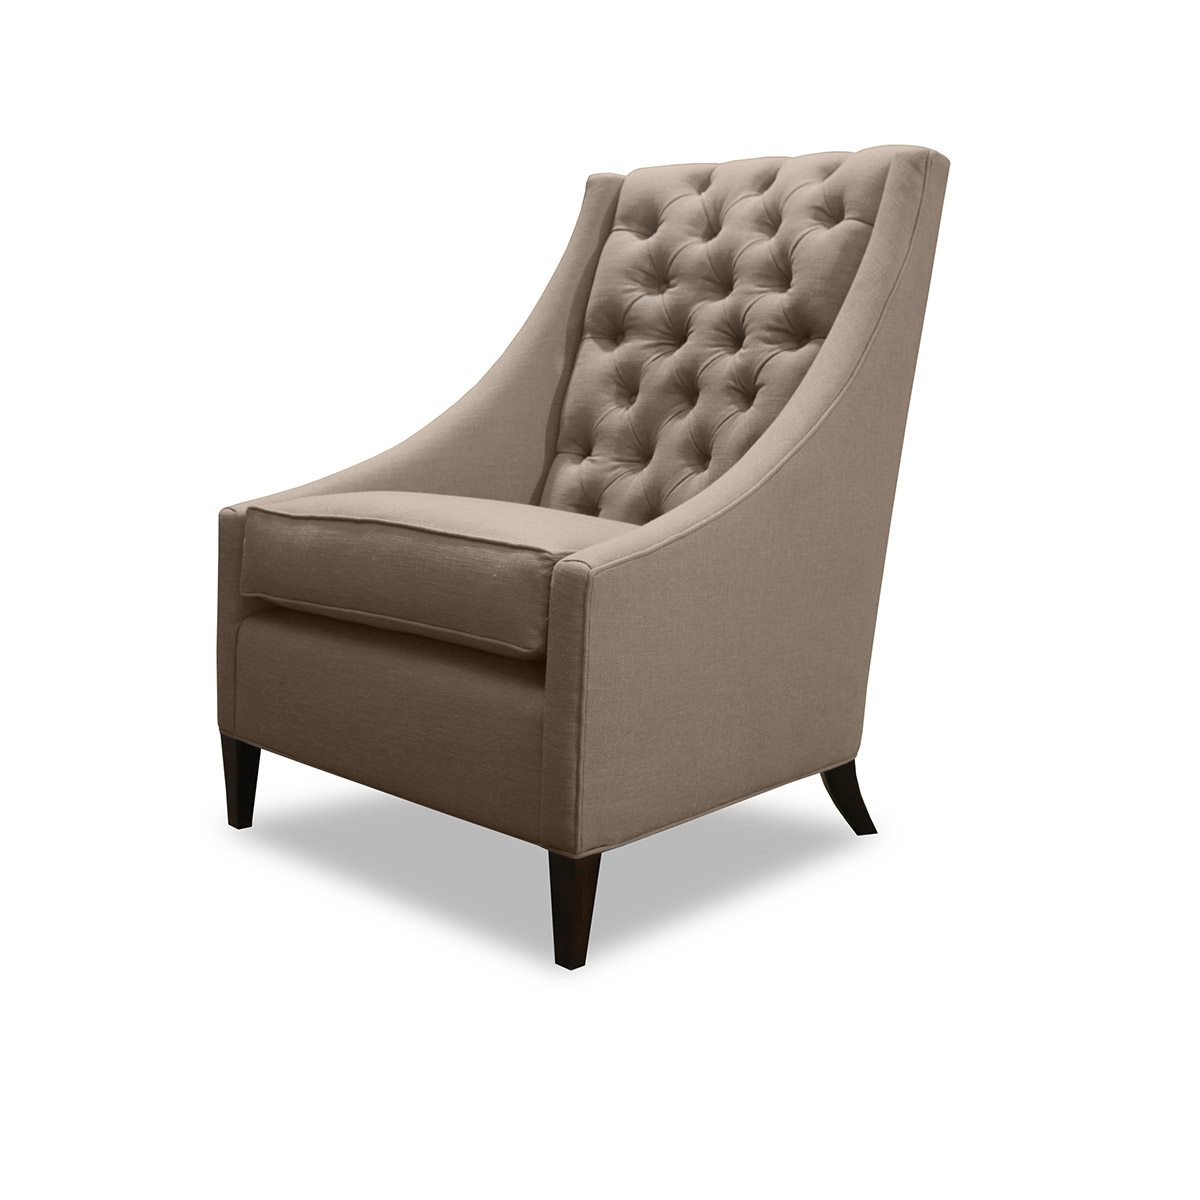 Brookline Tufted Dining Chair | Tufted Chair | Tufted Leather Dining Room Chairs